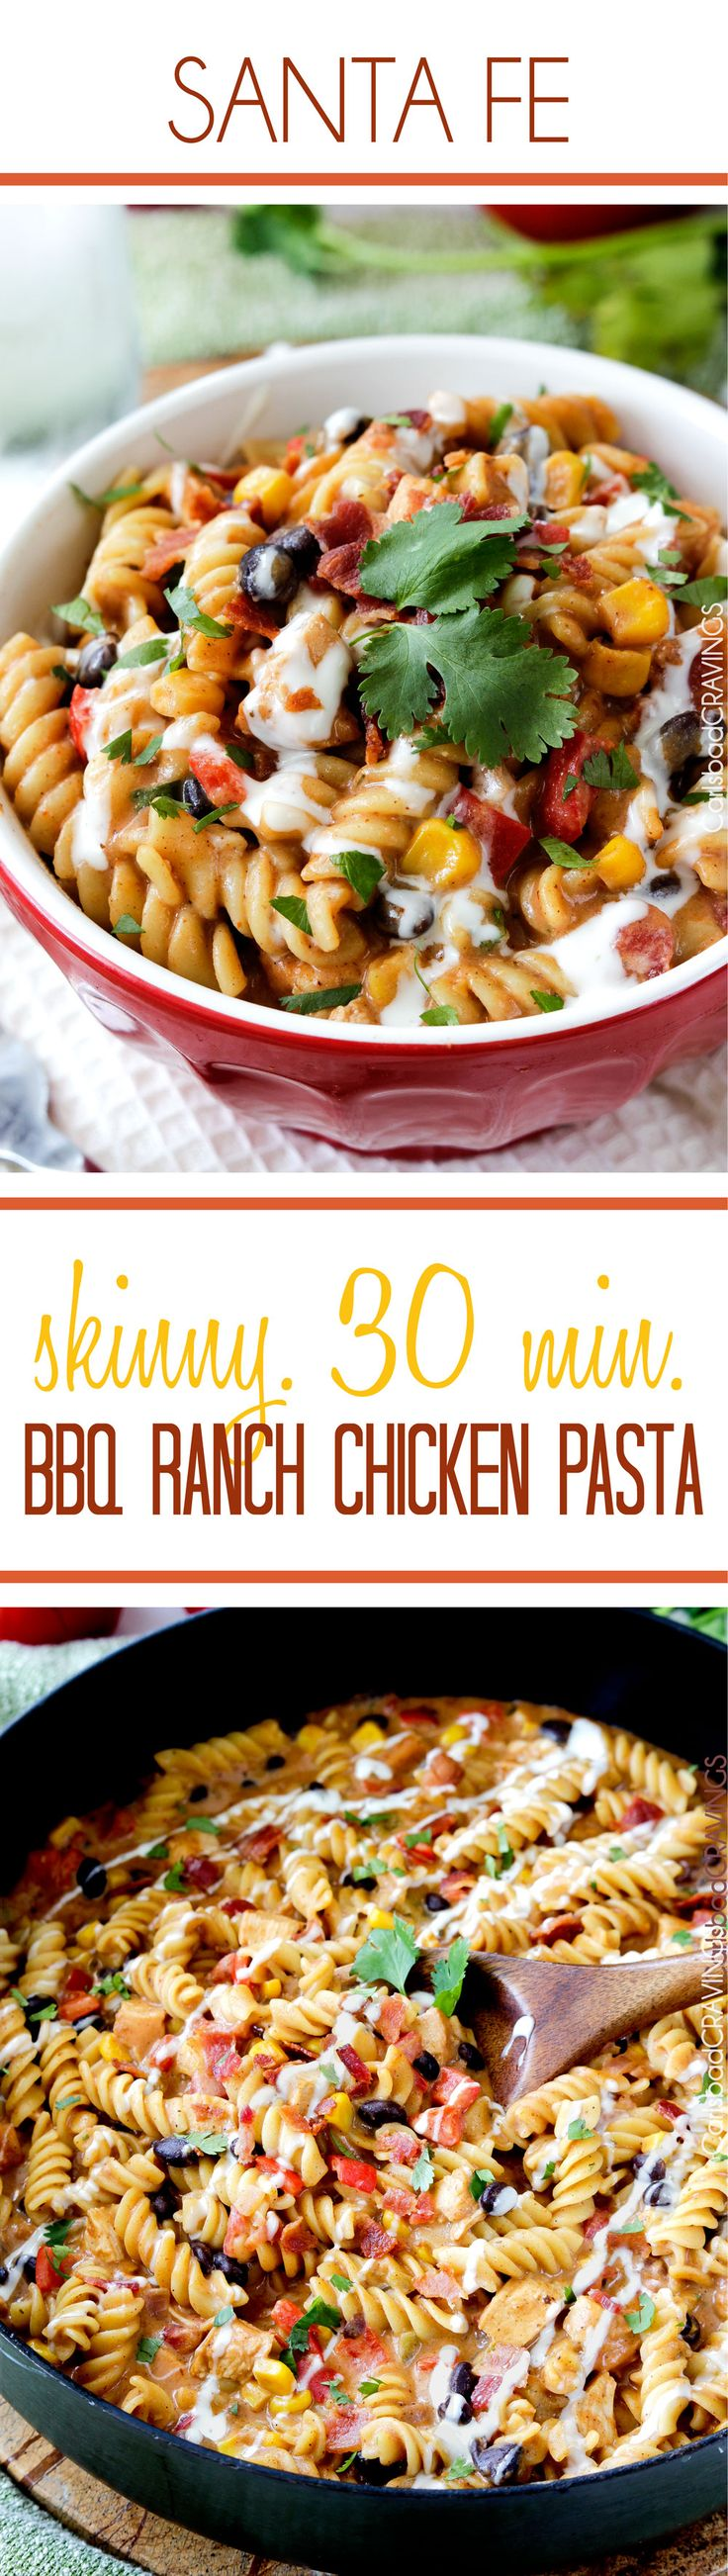 30 minute Santa Fe BBQ Ranch Chicken Pasta with its Mexican infused SKINNY creamy ranch cheese sauce and tender oven baked barbecue chicken